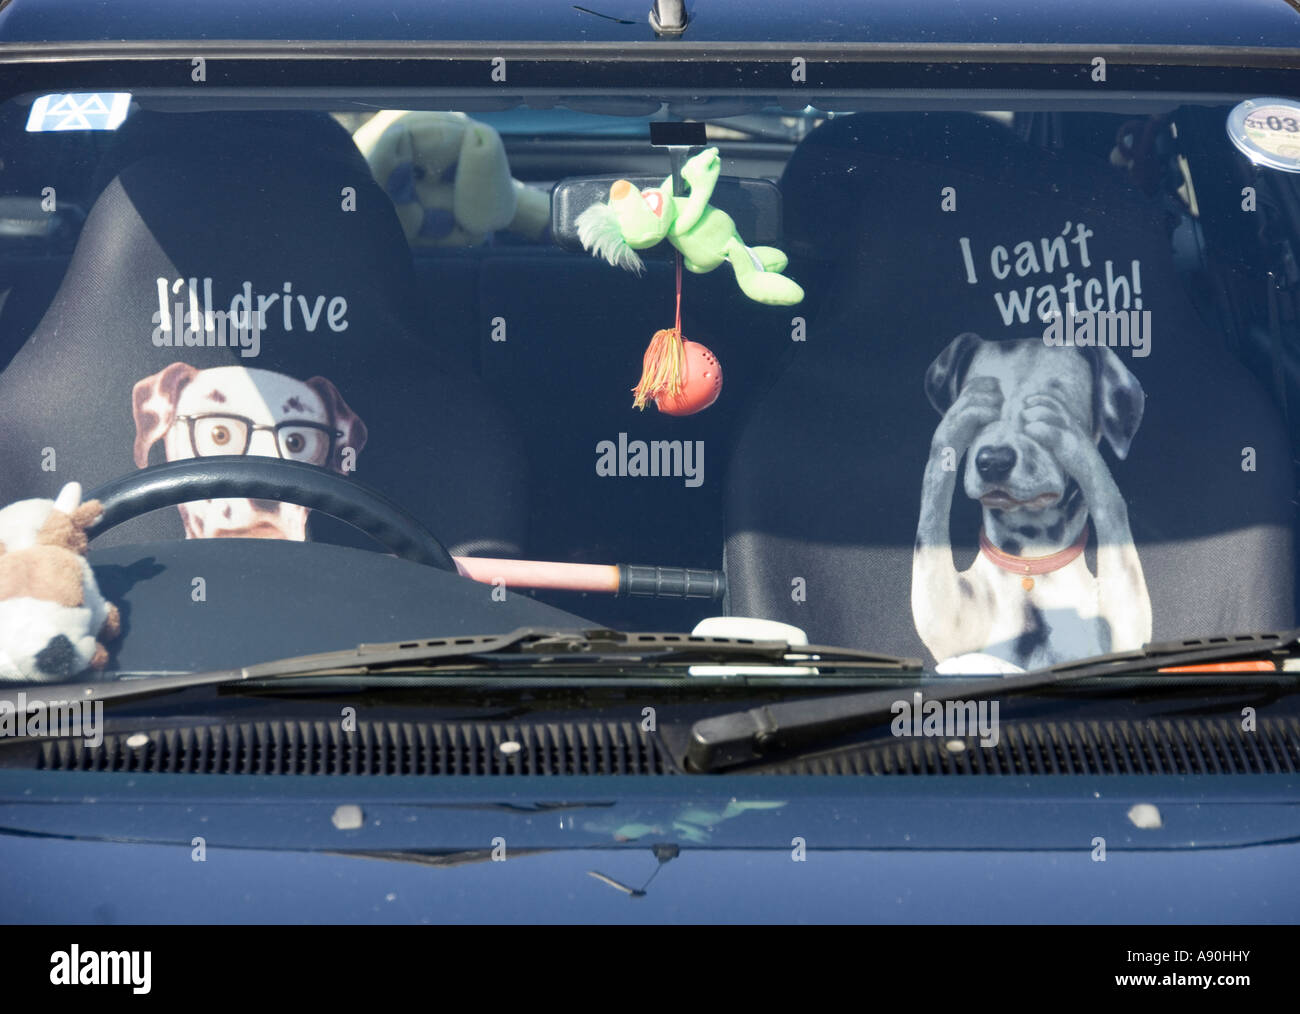 Comical Seat Covers Seen Through Windscreen Of Car With Dog